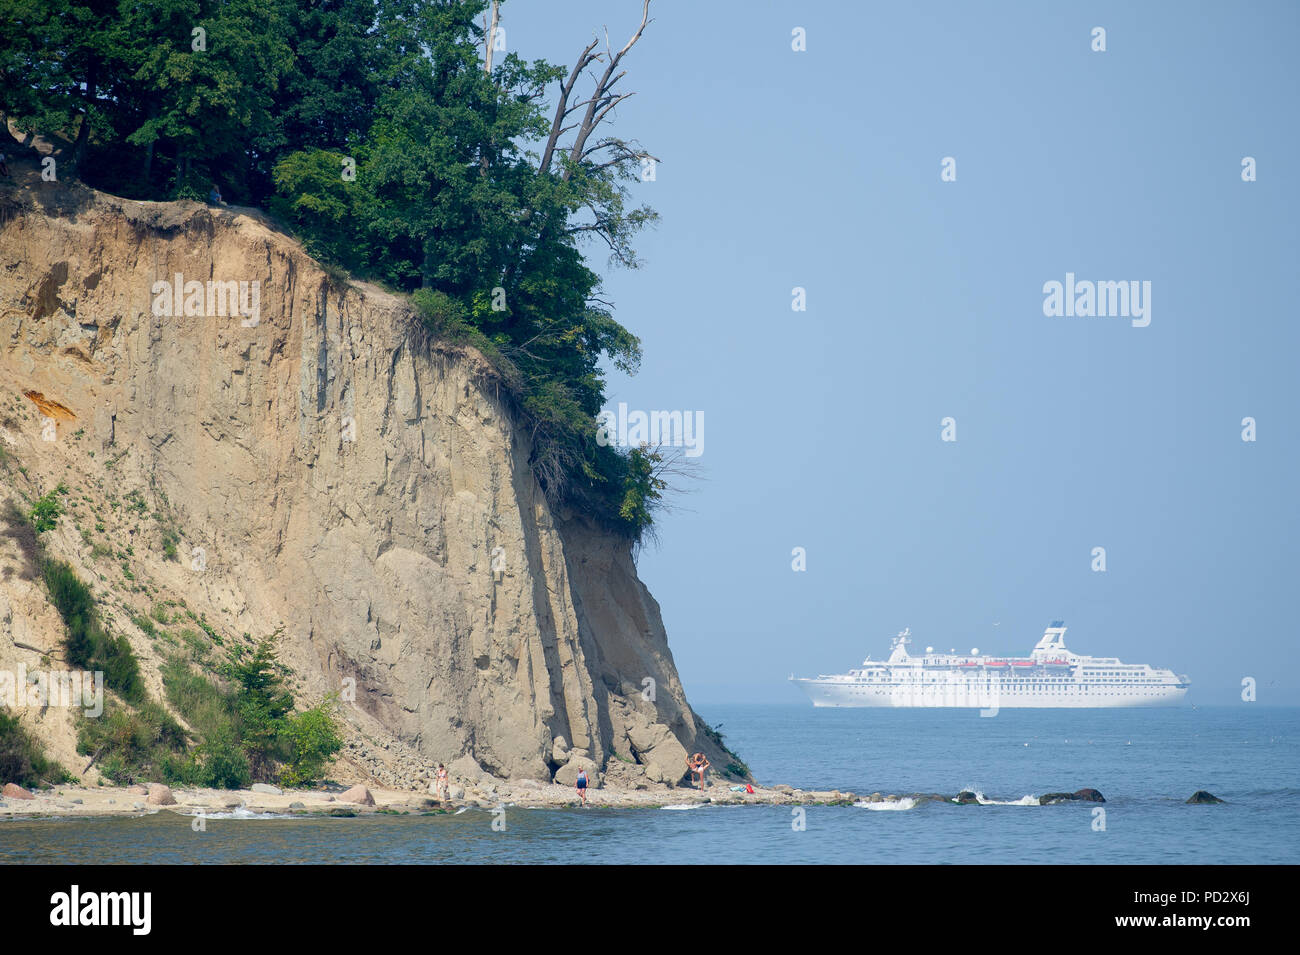 MS Astor cruise ship and cliff in Gdynia Orlowo, Poland. August 1st 2018 © Wojciech Strozyk / Alamy Stock Photo - Stock Image